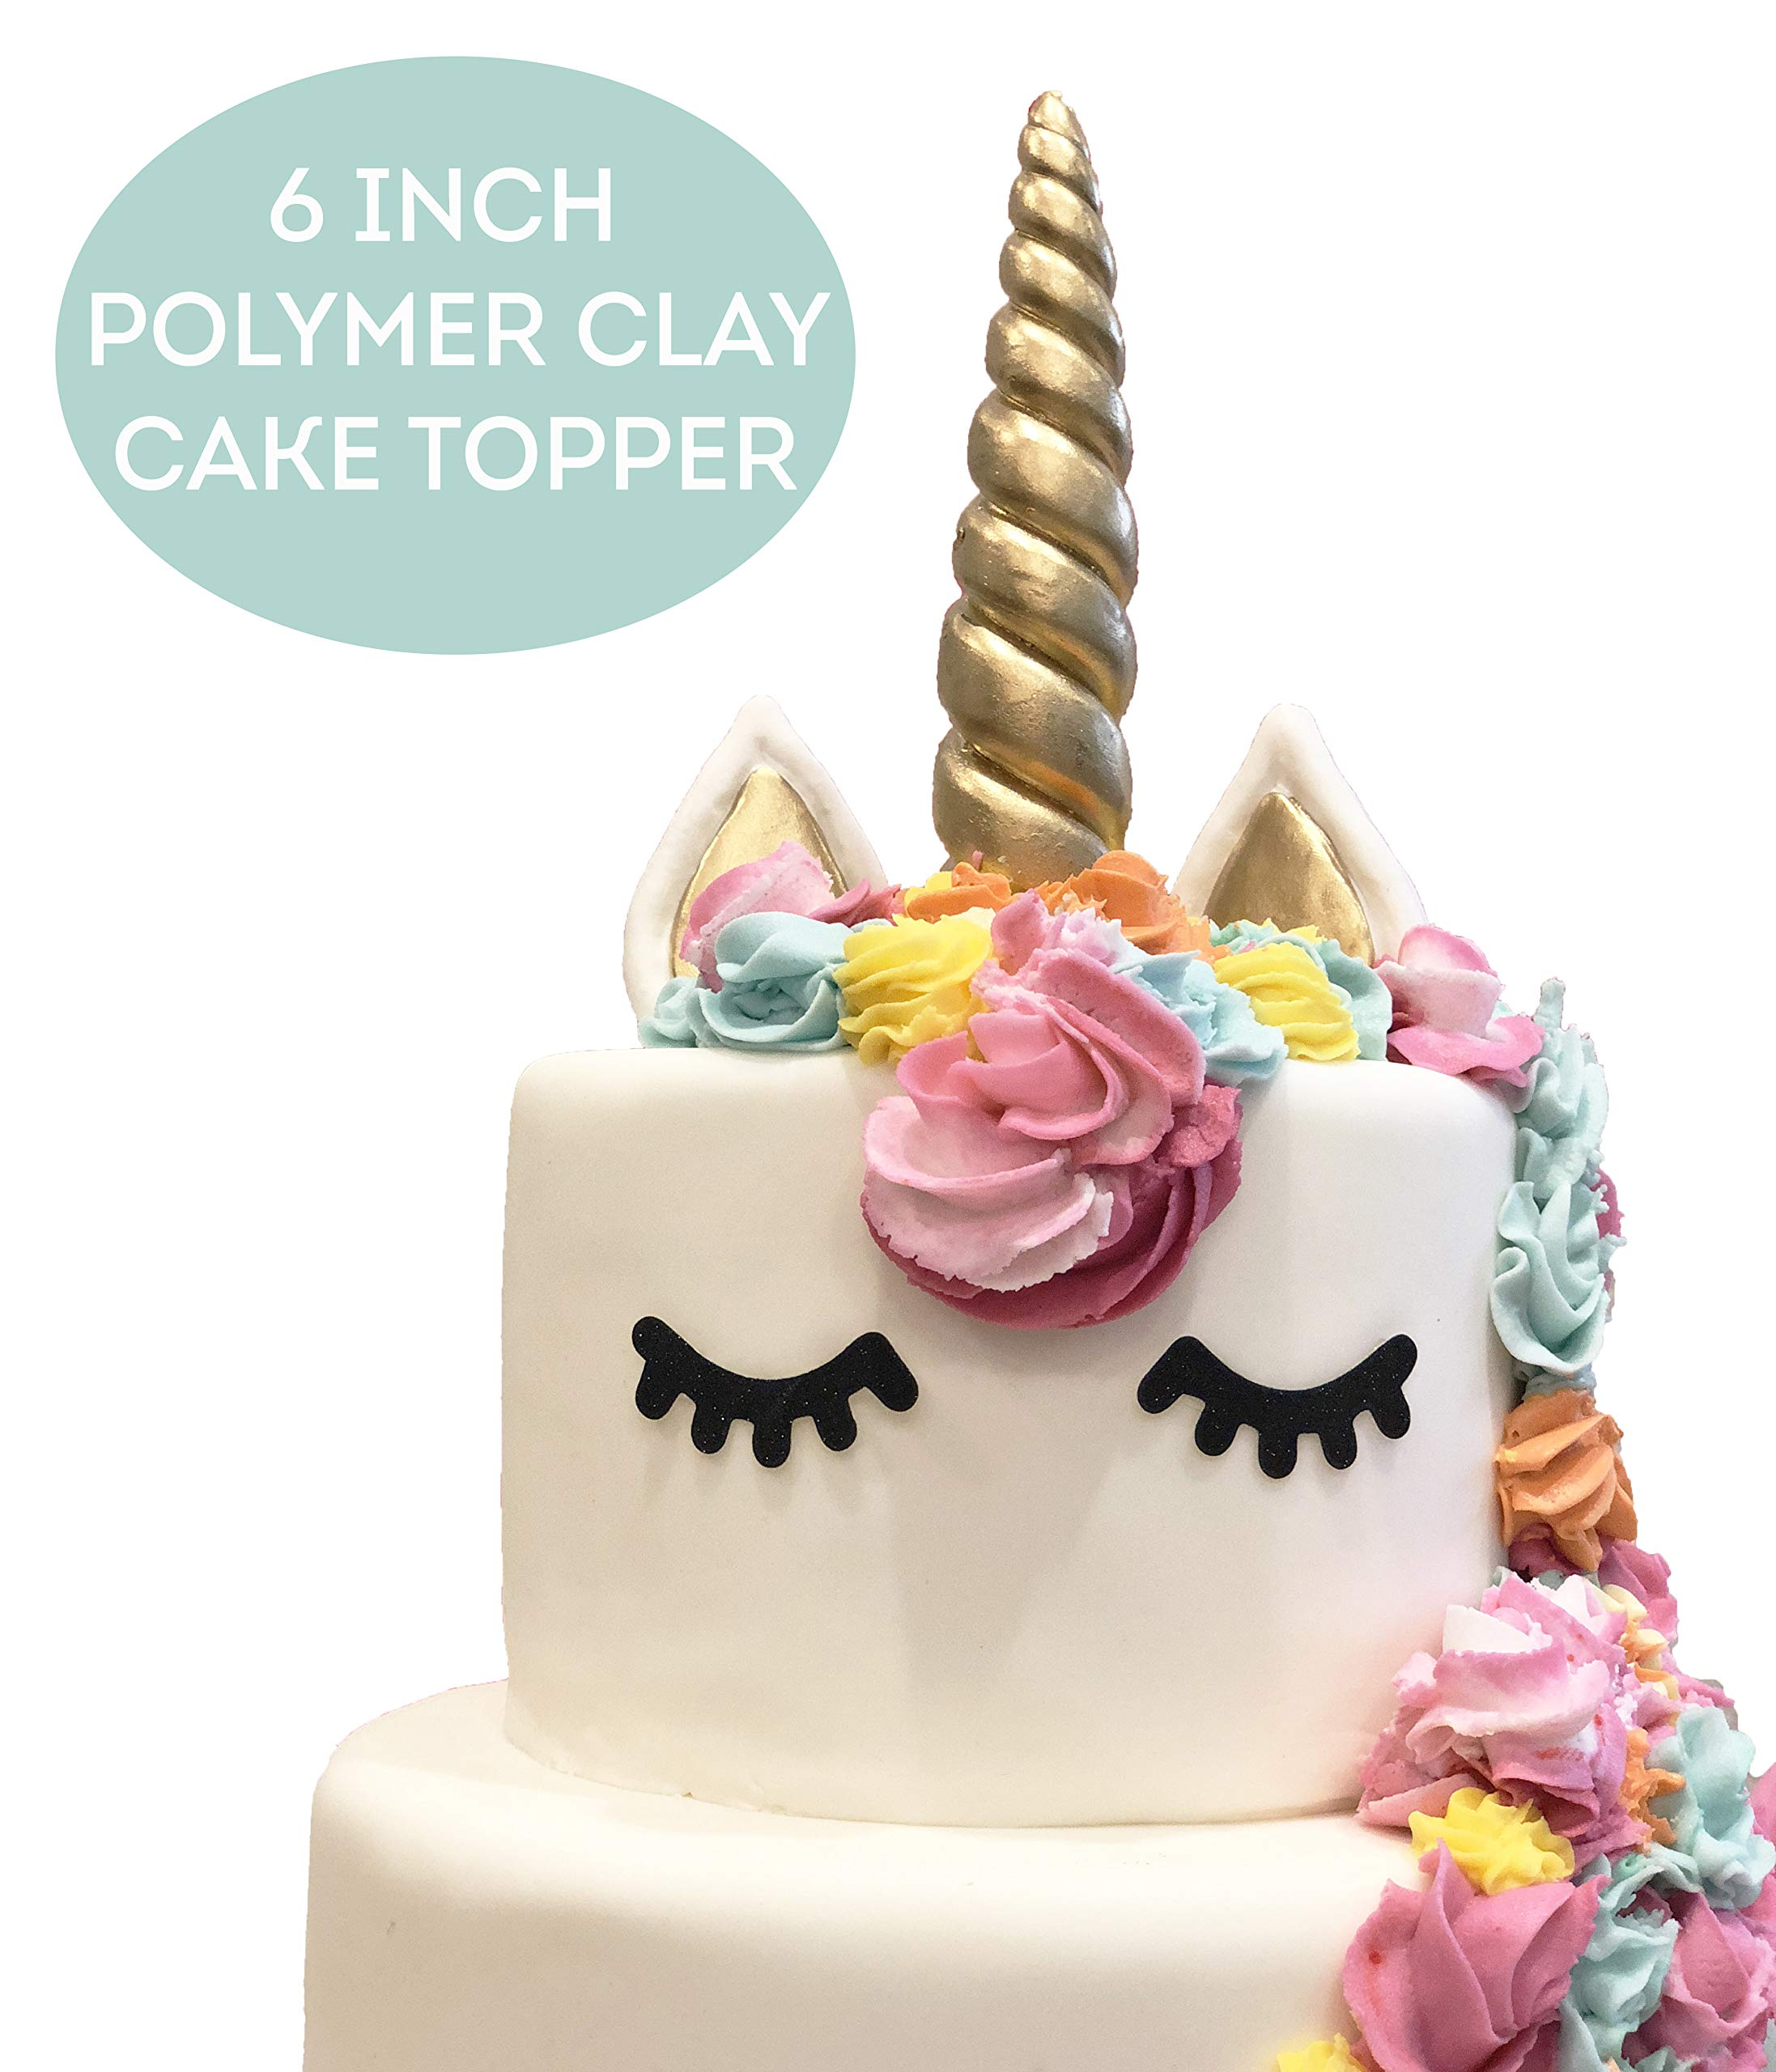 LIMITLESS Unicorn Cake Topper Handmade 5 Piece Set (Set Includes: 1 Horn, 2 Ears, and 2 Eyelashes). Unicorn party… 3